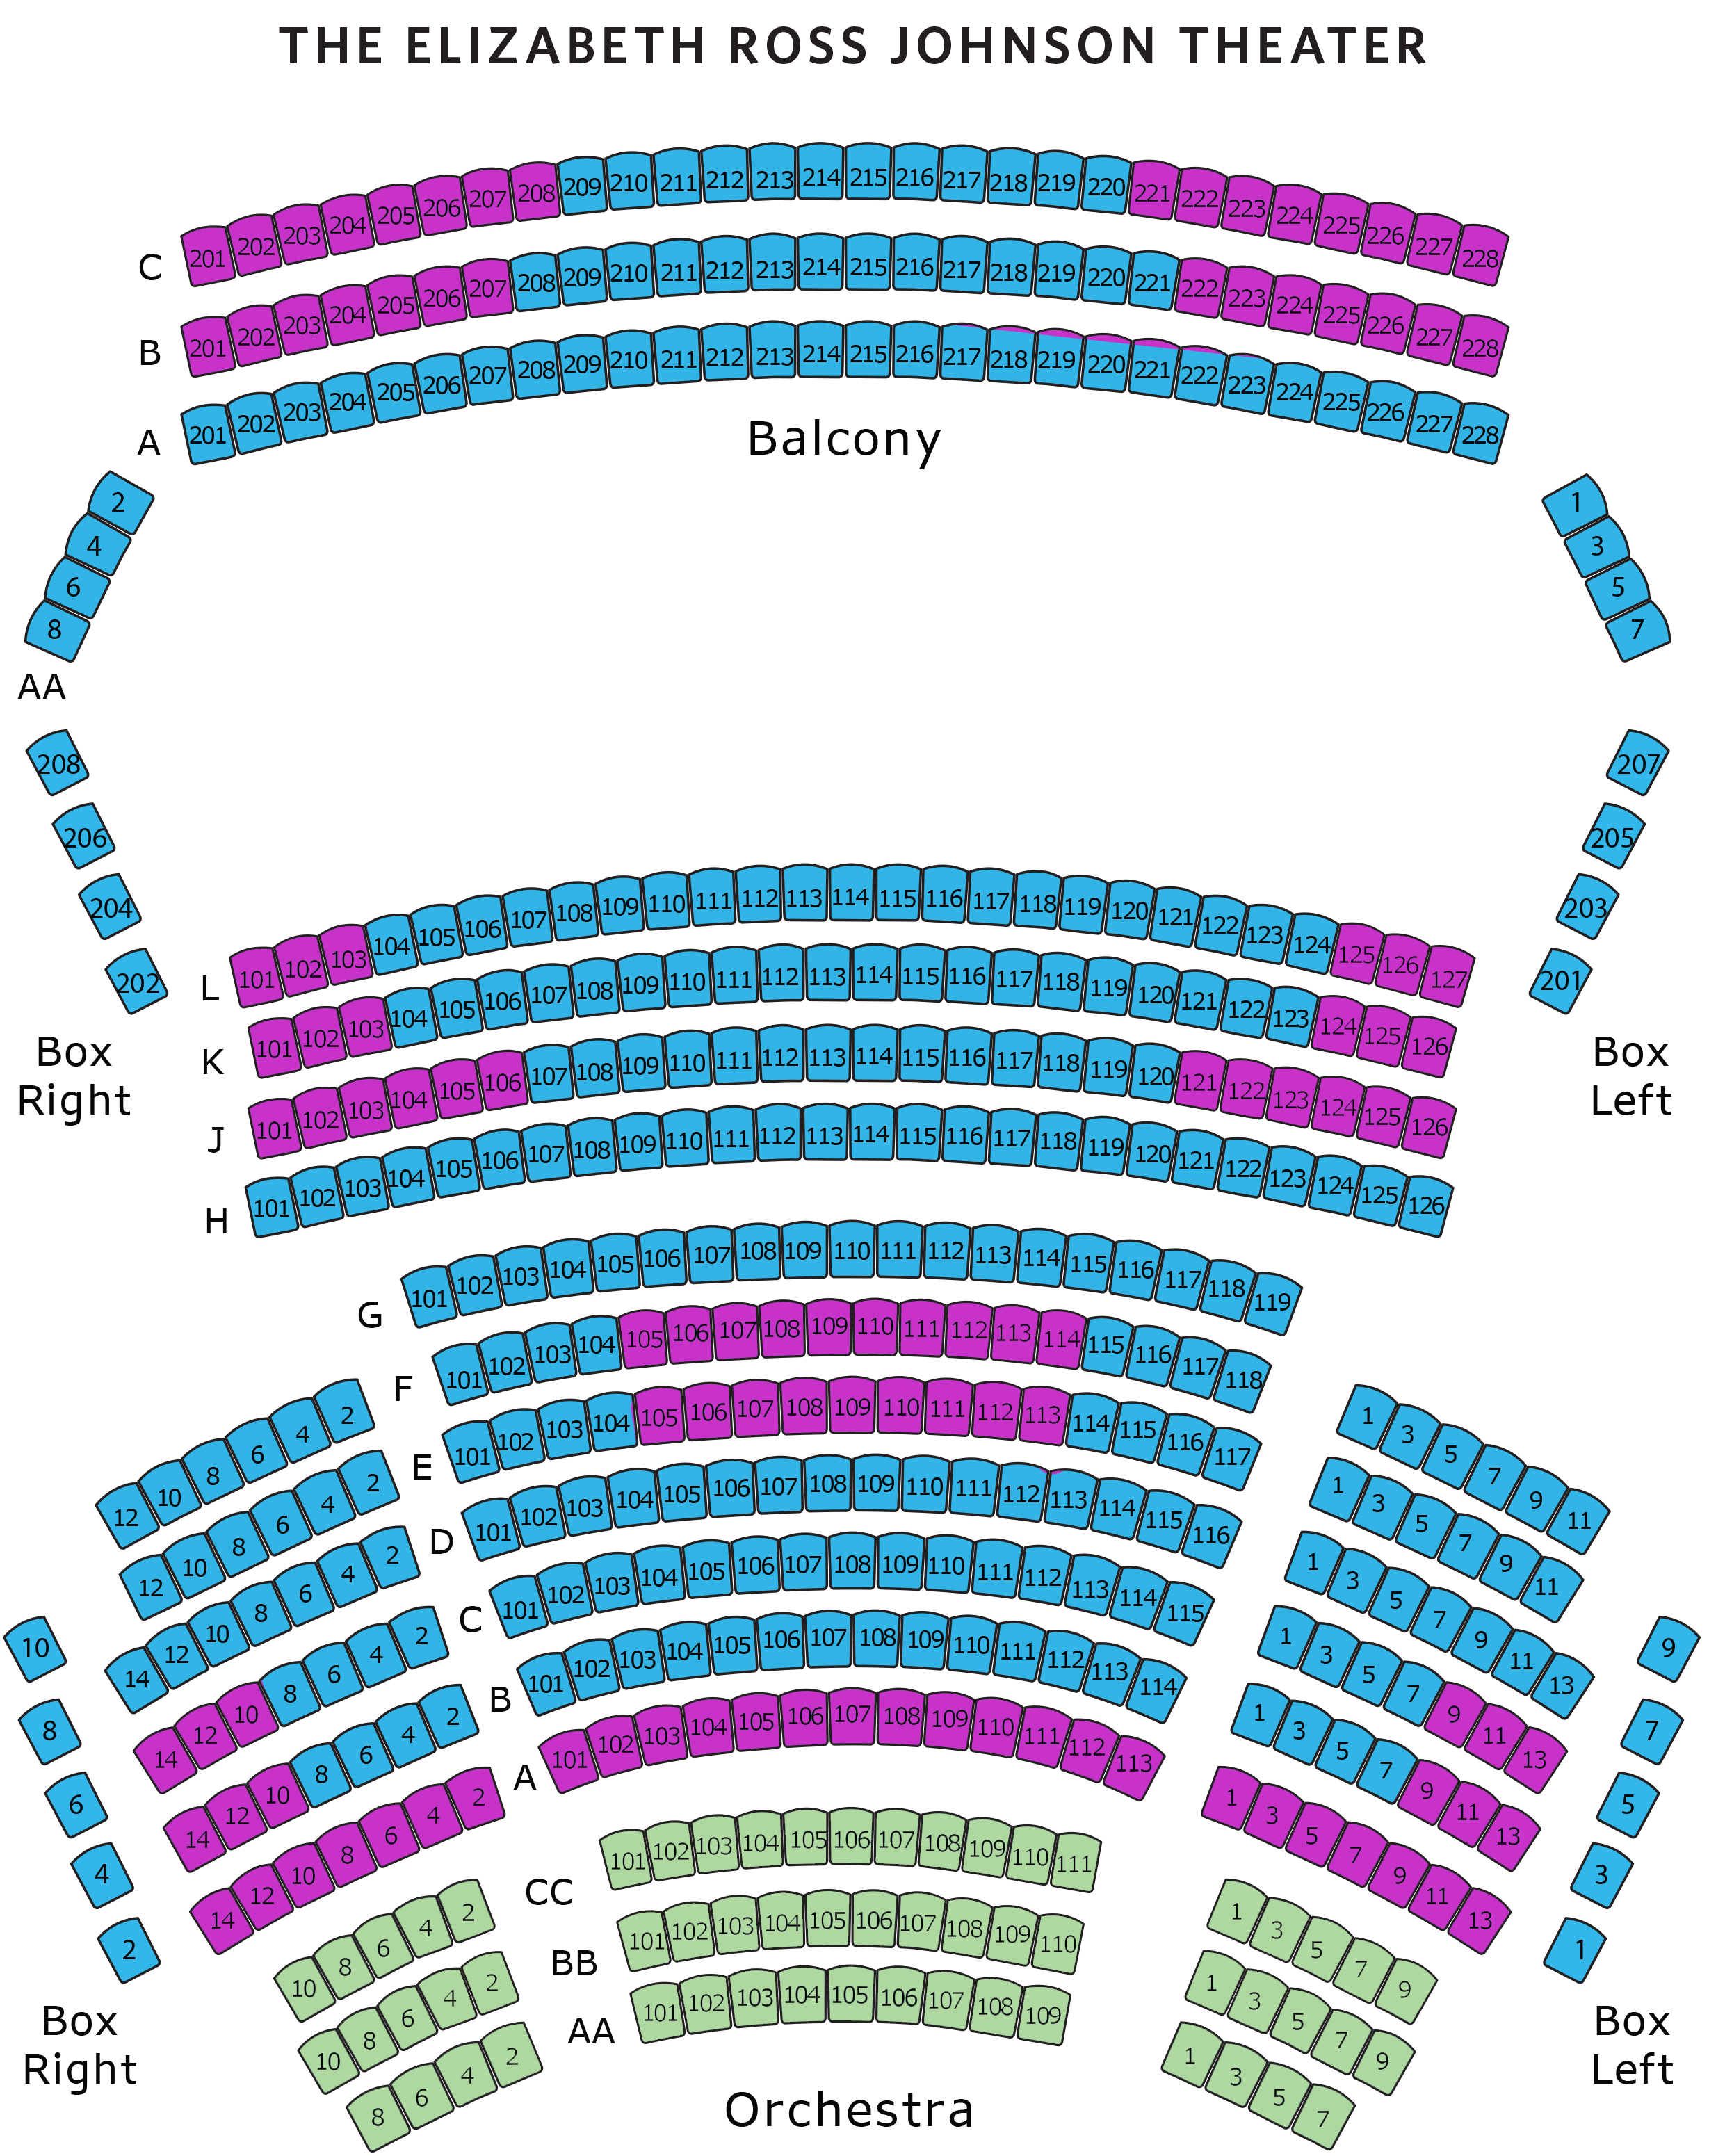 Elizabeth Ross Johnson Theater Map. Rows AA thru CC Front Orchestra. Rows A thru L Orchestra. Rows AA Box Right and Box Left. Rows A thru C Balcony.